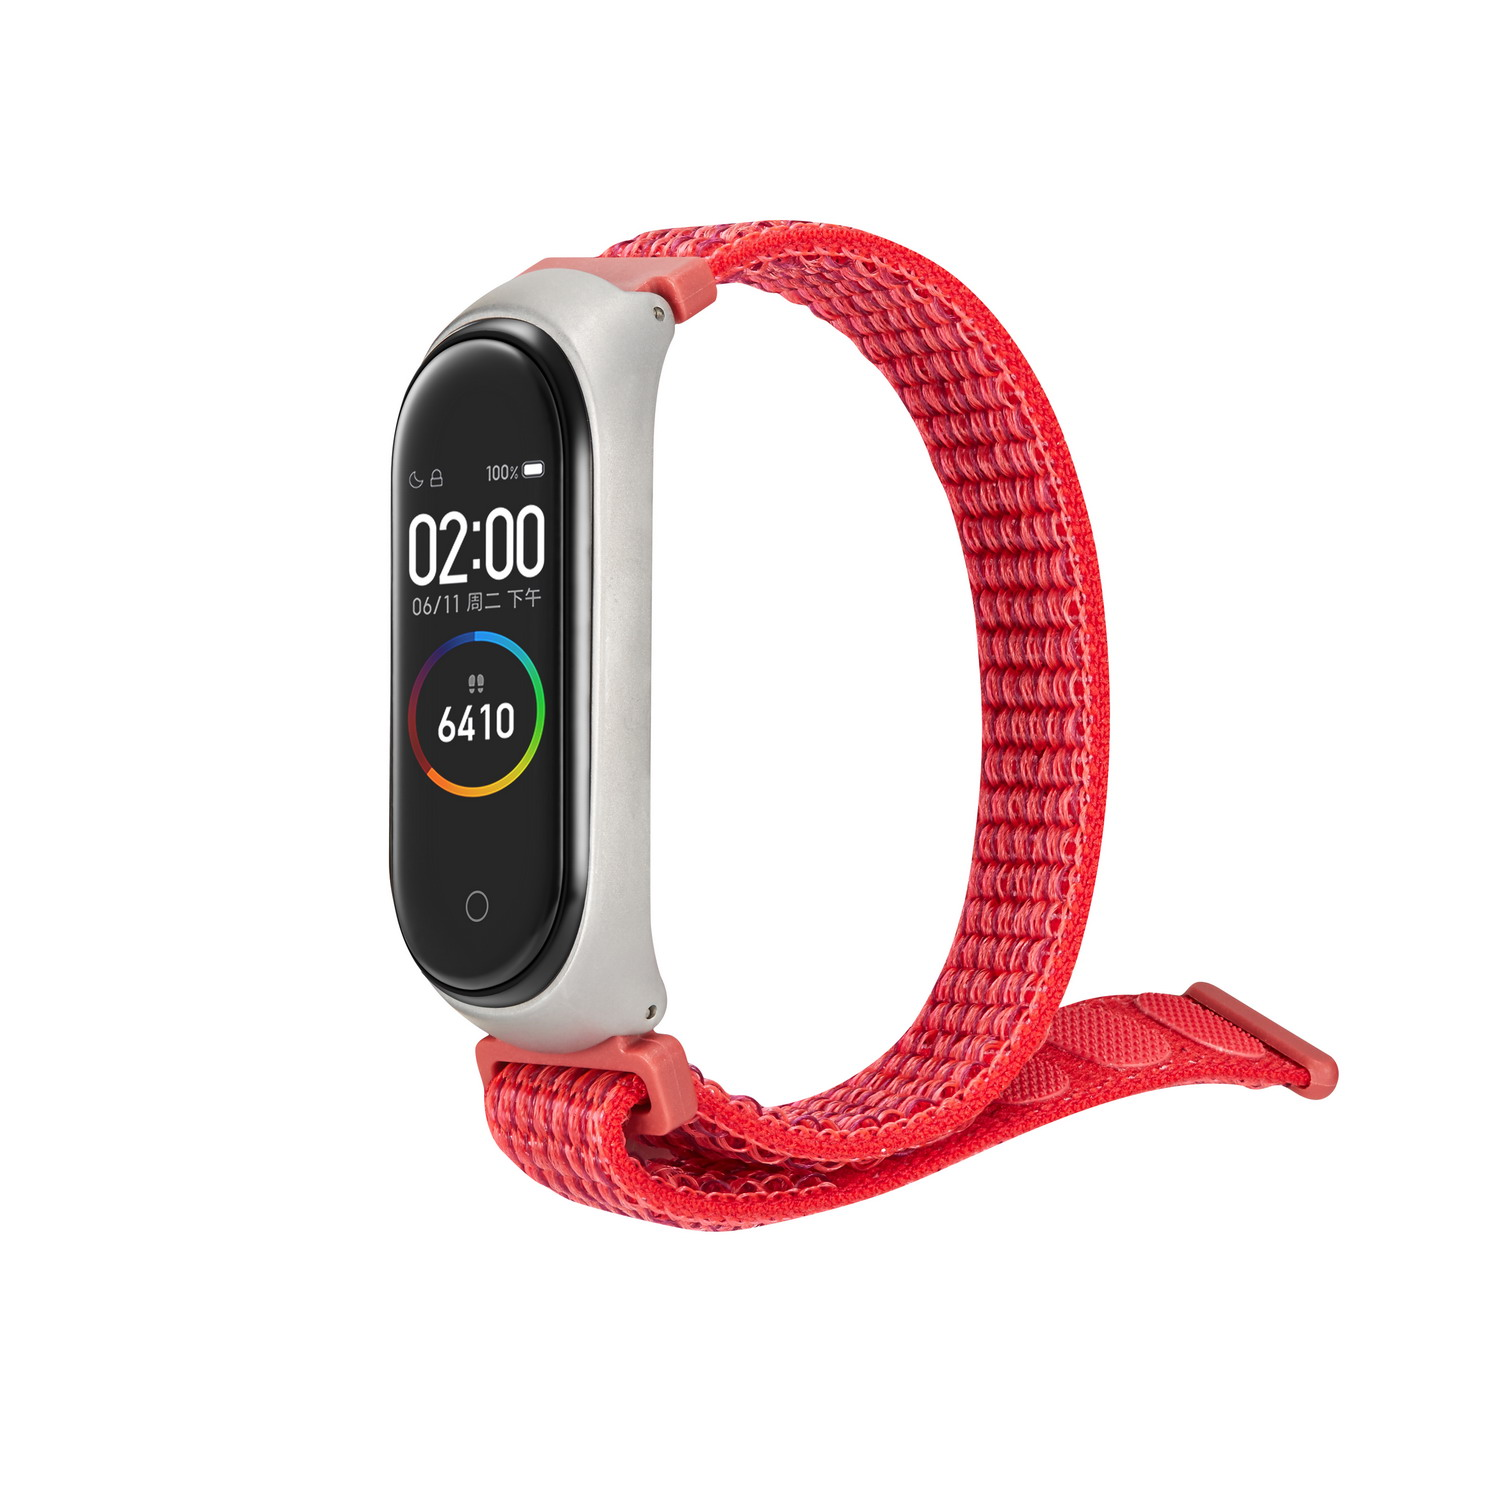 Image 5 - Nylon loop replaceable Bracelet for Xiaomi Mi band 3 Sports Wristband Breathable Strap for Xiaomi Miband 4 smart watch Accessori-in Smart Accessories from Consumer Electronics